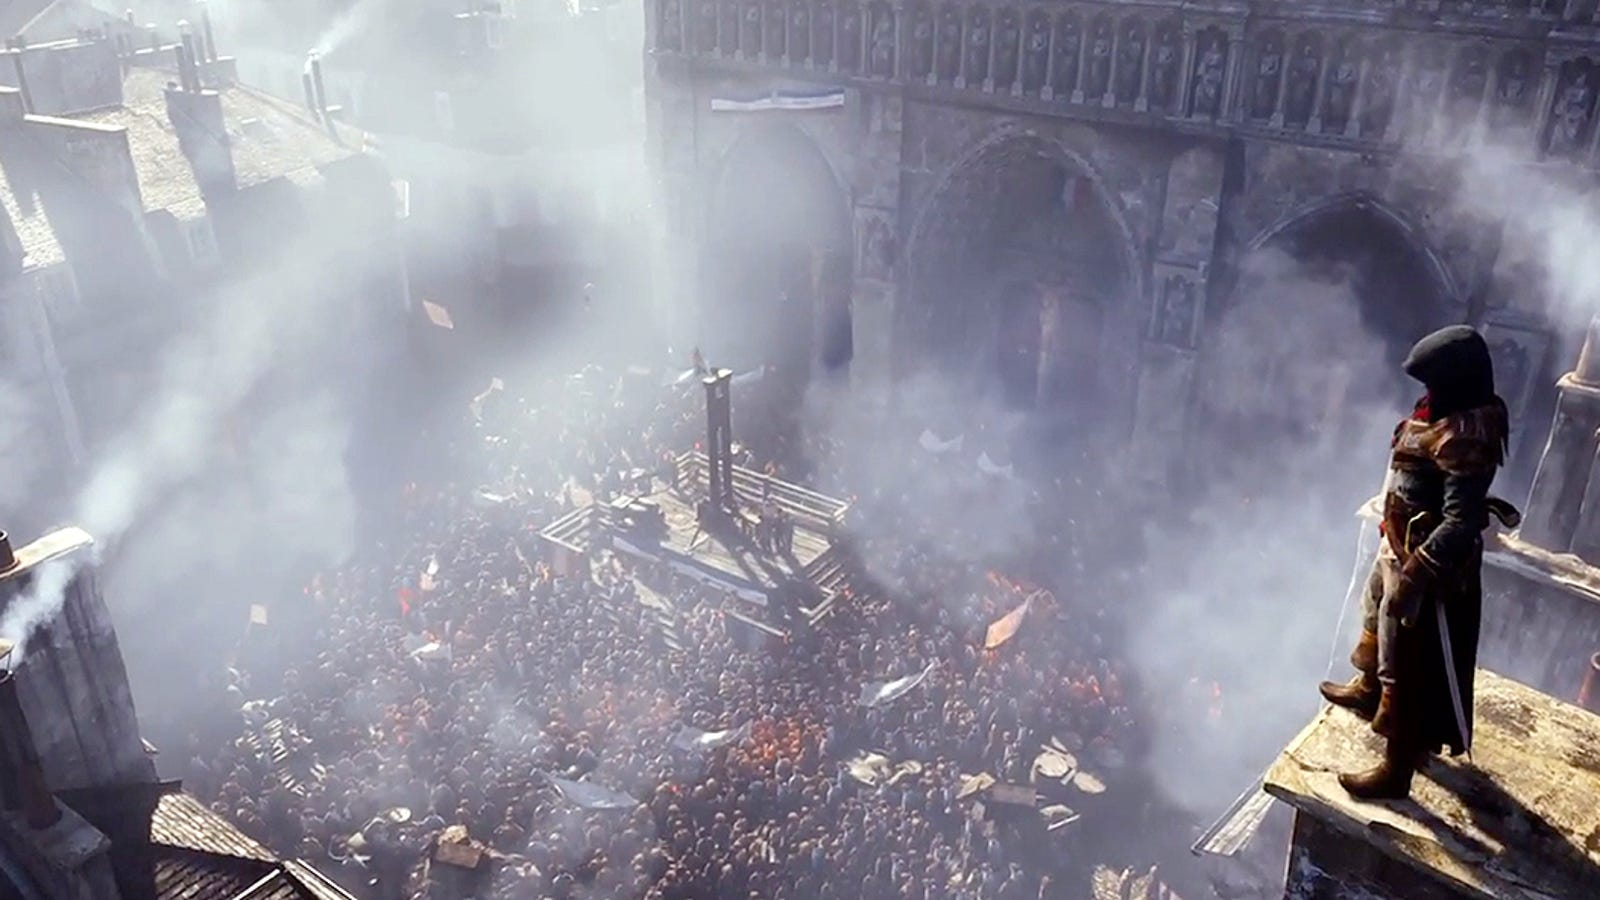 Ubisoft confirma Assassin's Creed Unity: este es su primer vídeo